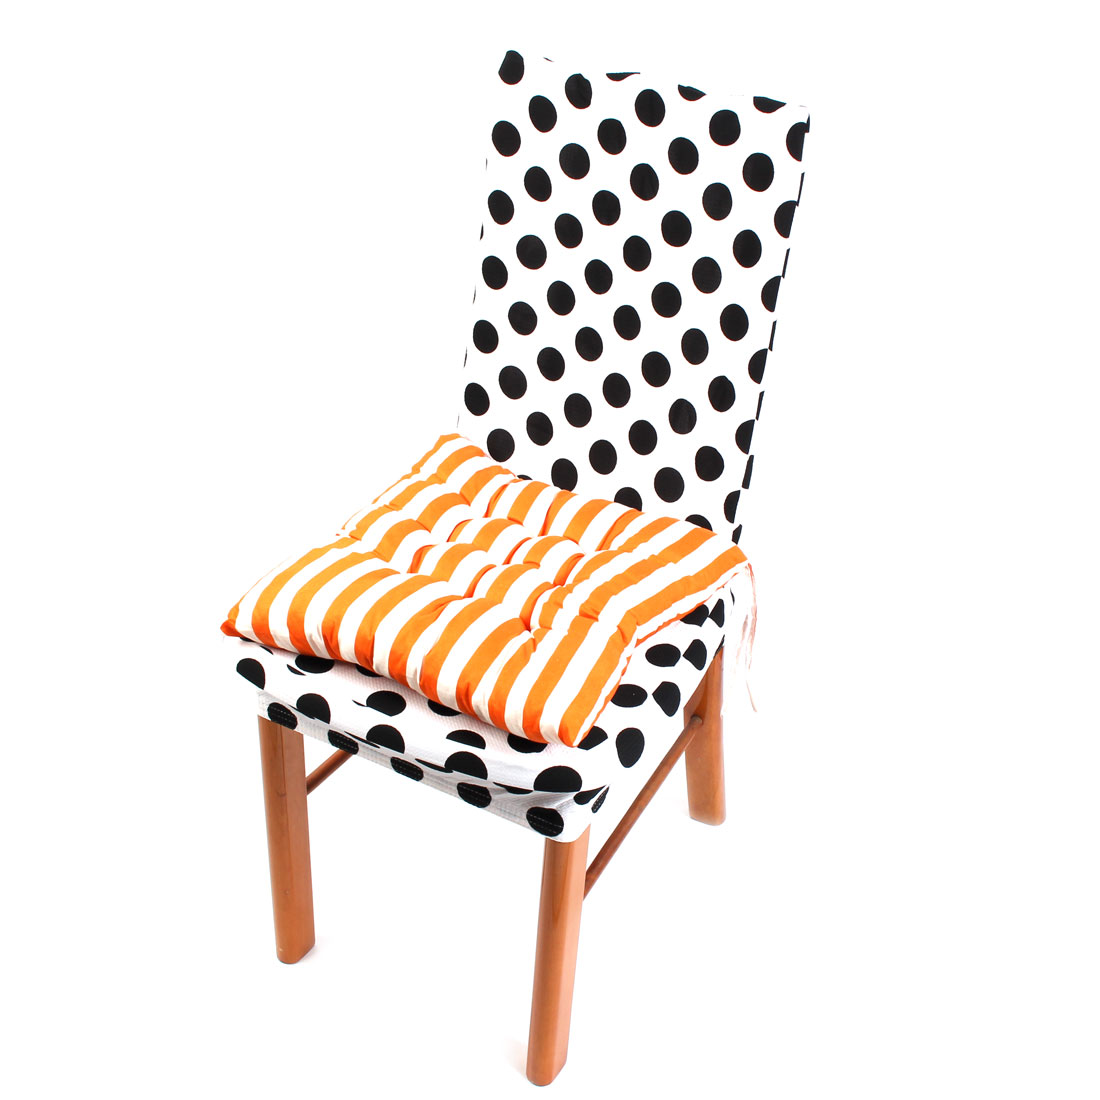 Household Bed Chair Sofa Cotton Blends Square Soft Breathable Stripe Pattern Seat Cushion Orange and White 40cm x 40cm